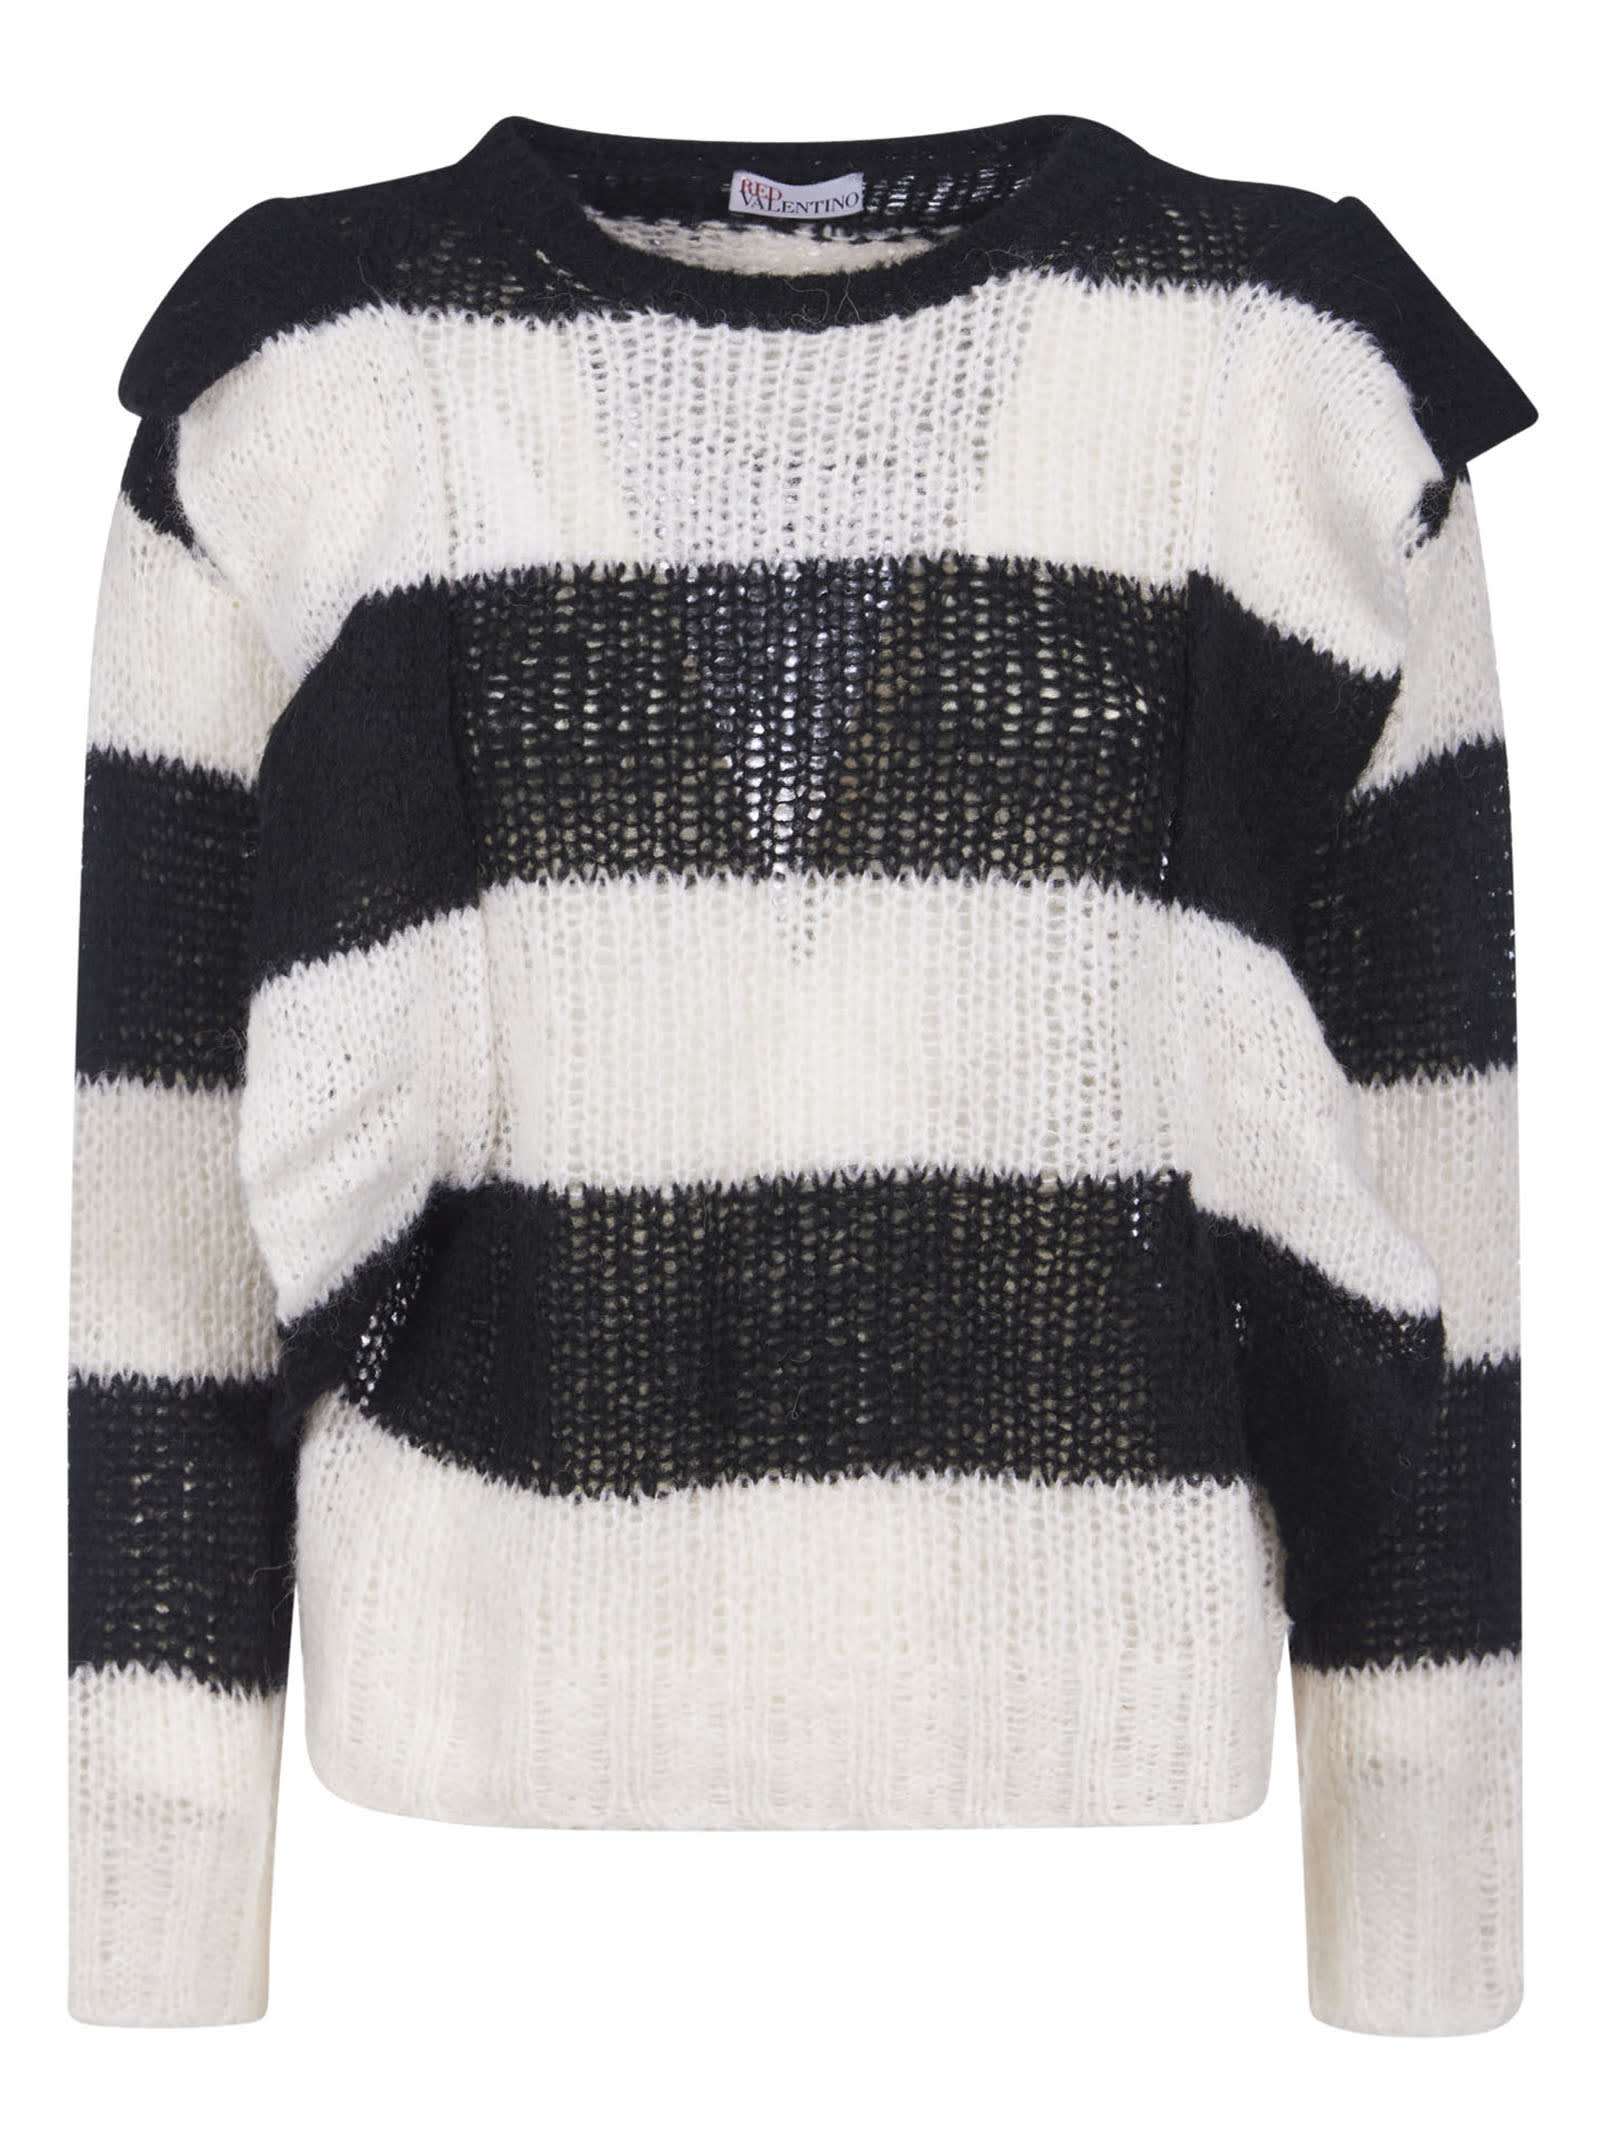 Striped Woven Sweater from RED ValentinoComposition: 38% Acrylic, 38% Alpaca, 14% Polyamide, 10% Wool